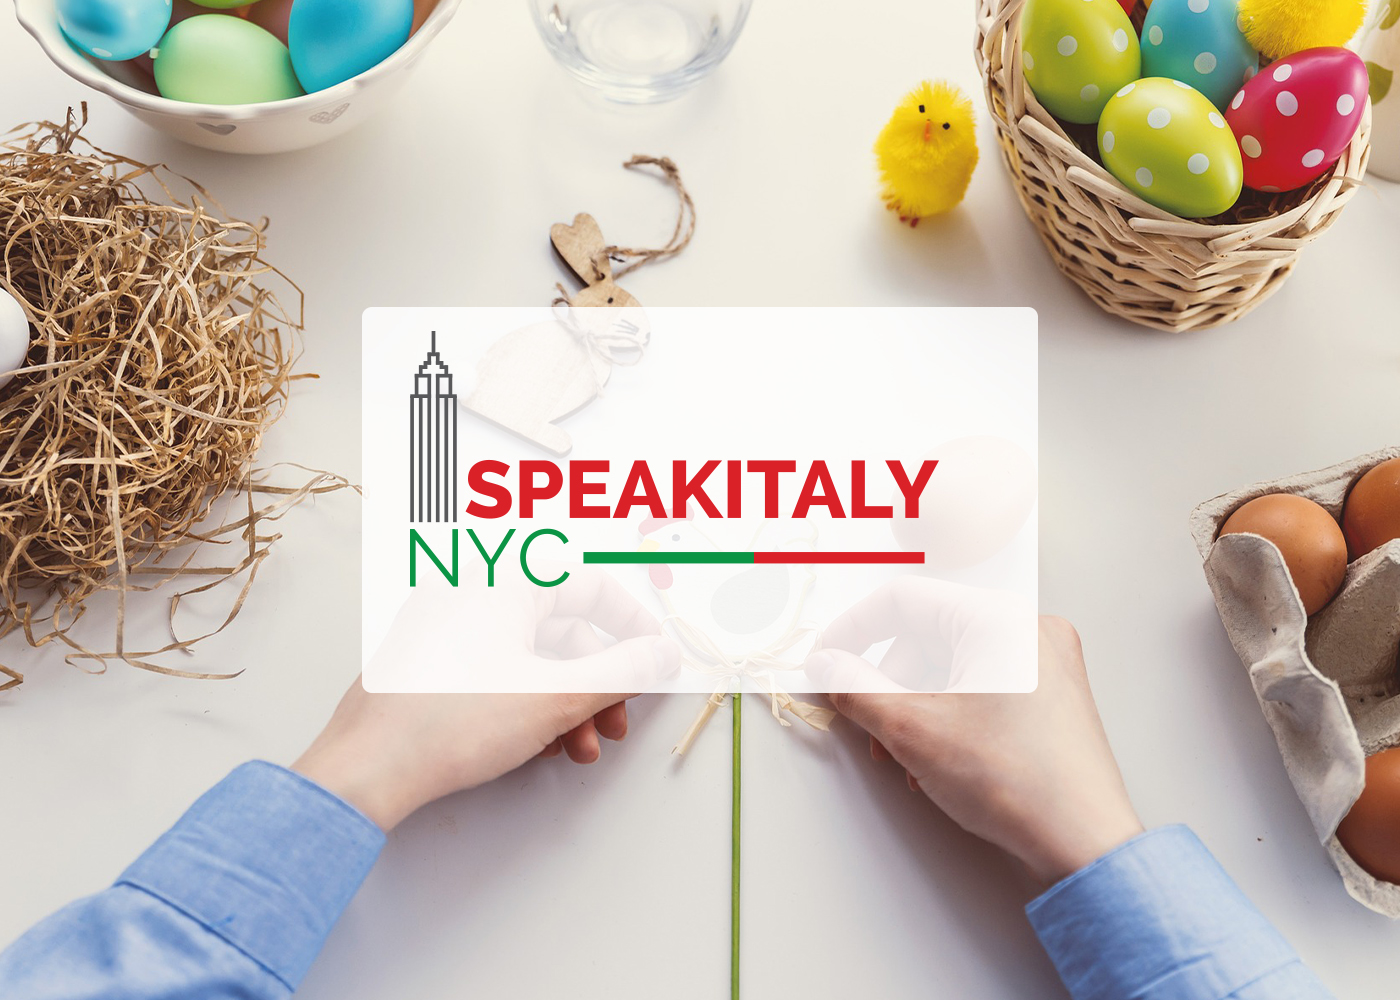 IN PERSON Easter Egg and Decoration Workshop at Speakitaly NYC